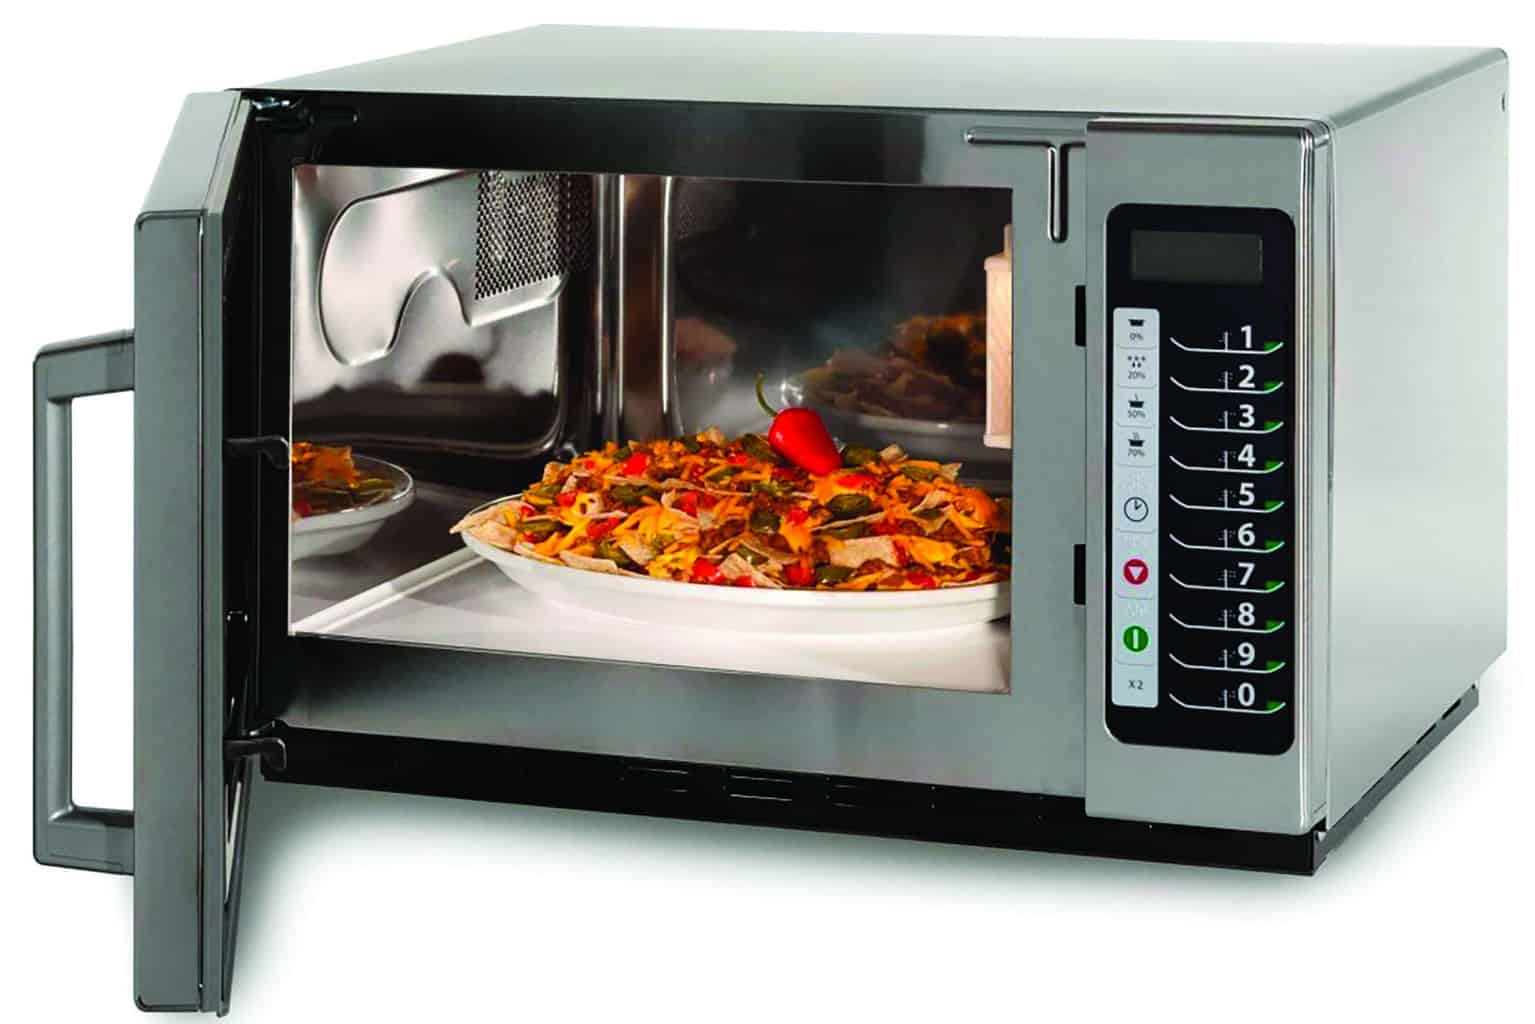 Over 90 Of American Families Prepare Meals Using Microwave Ovens